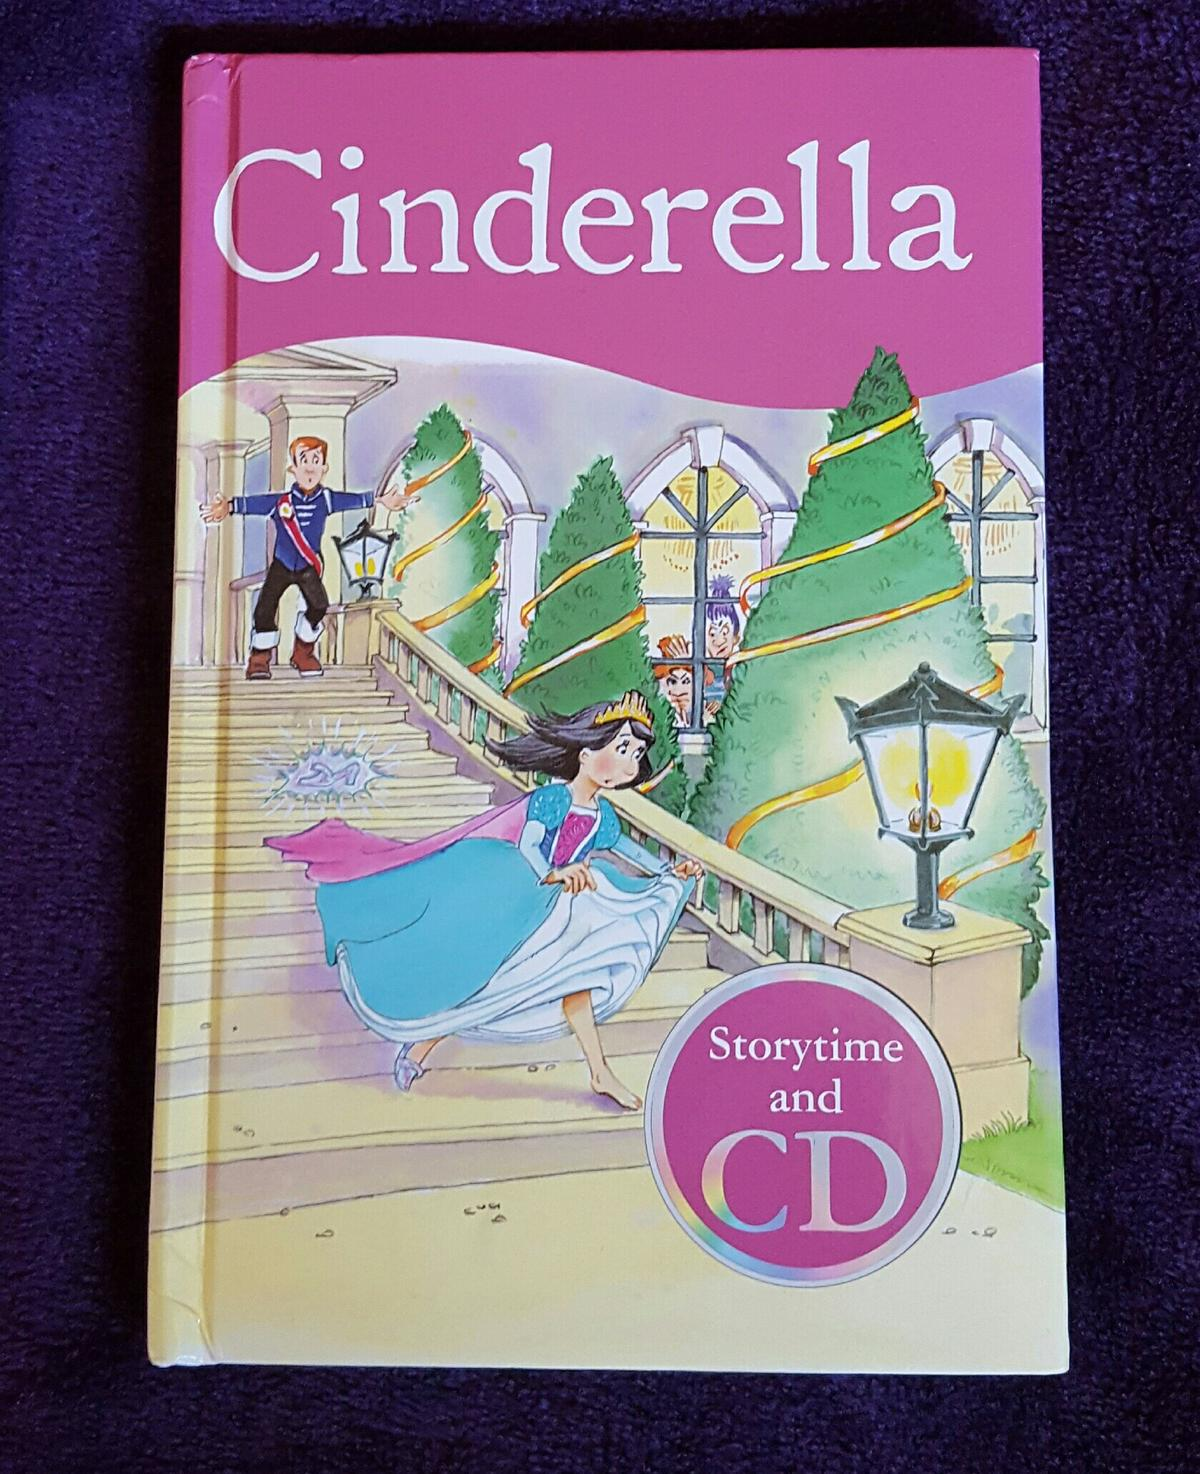 Cinderella Story book with CD